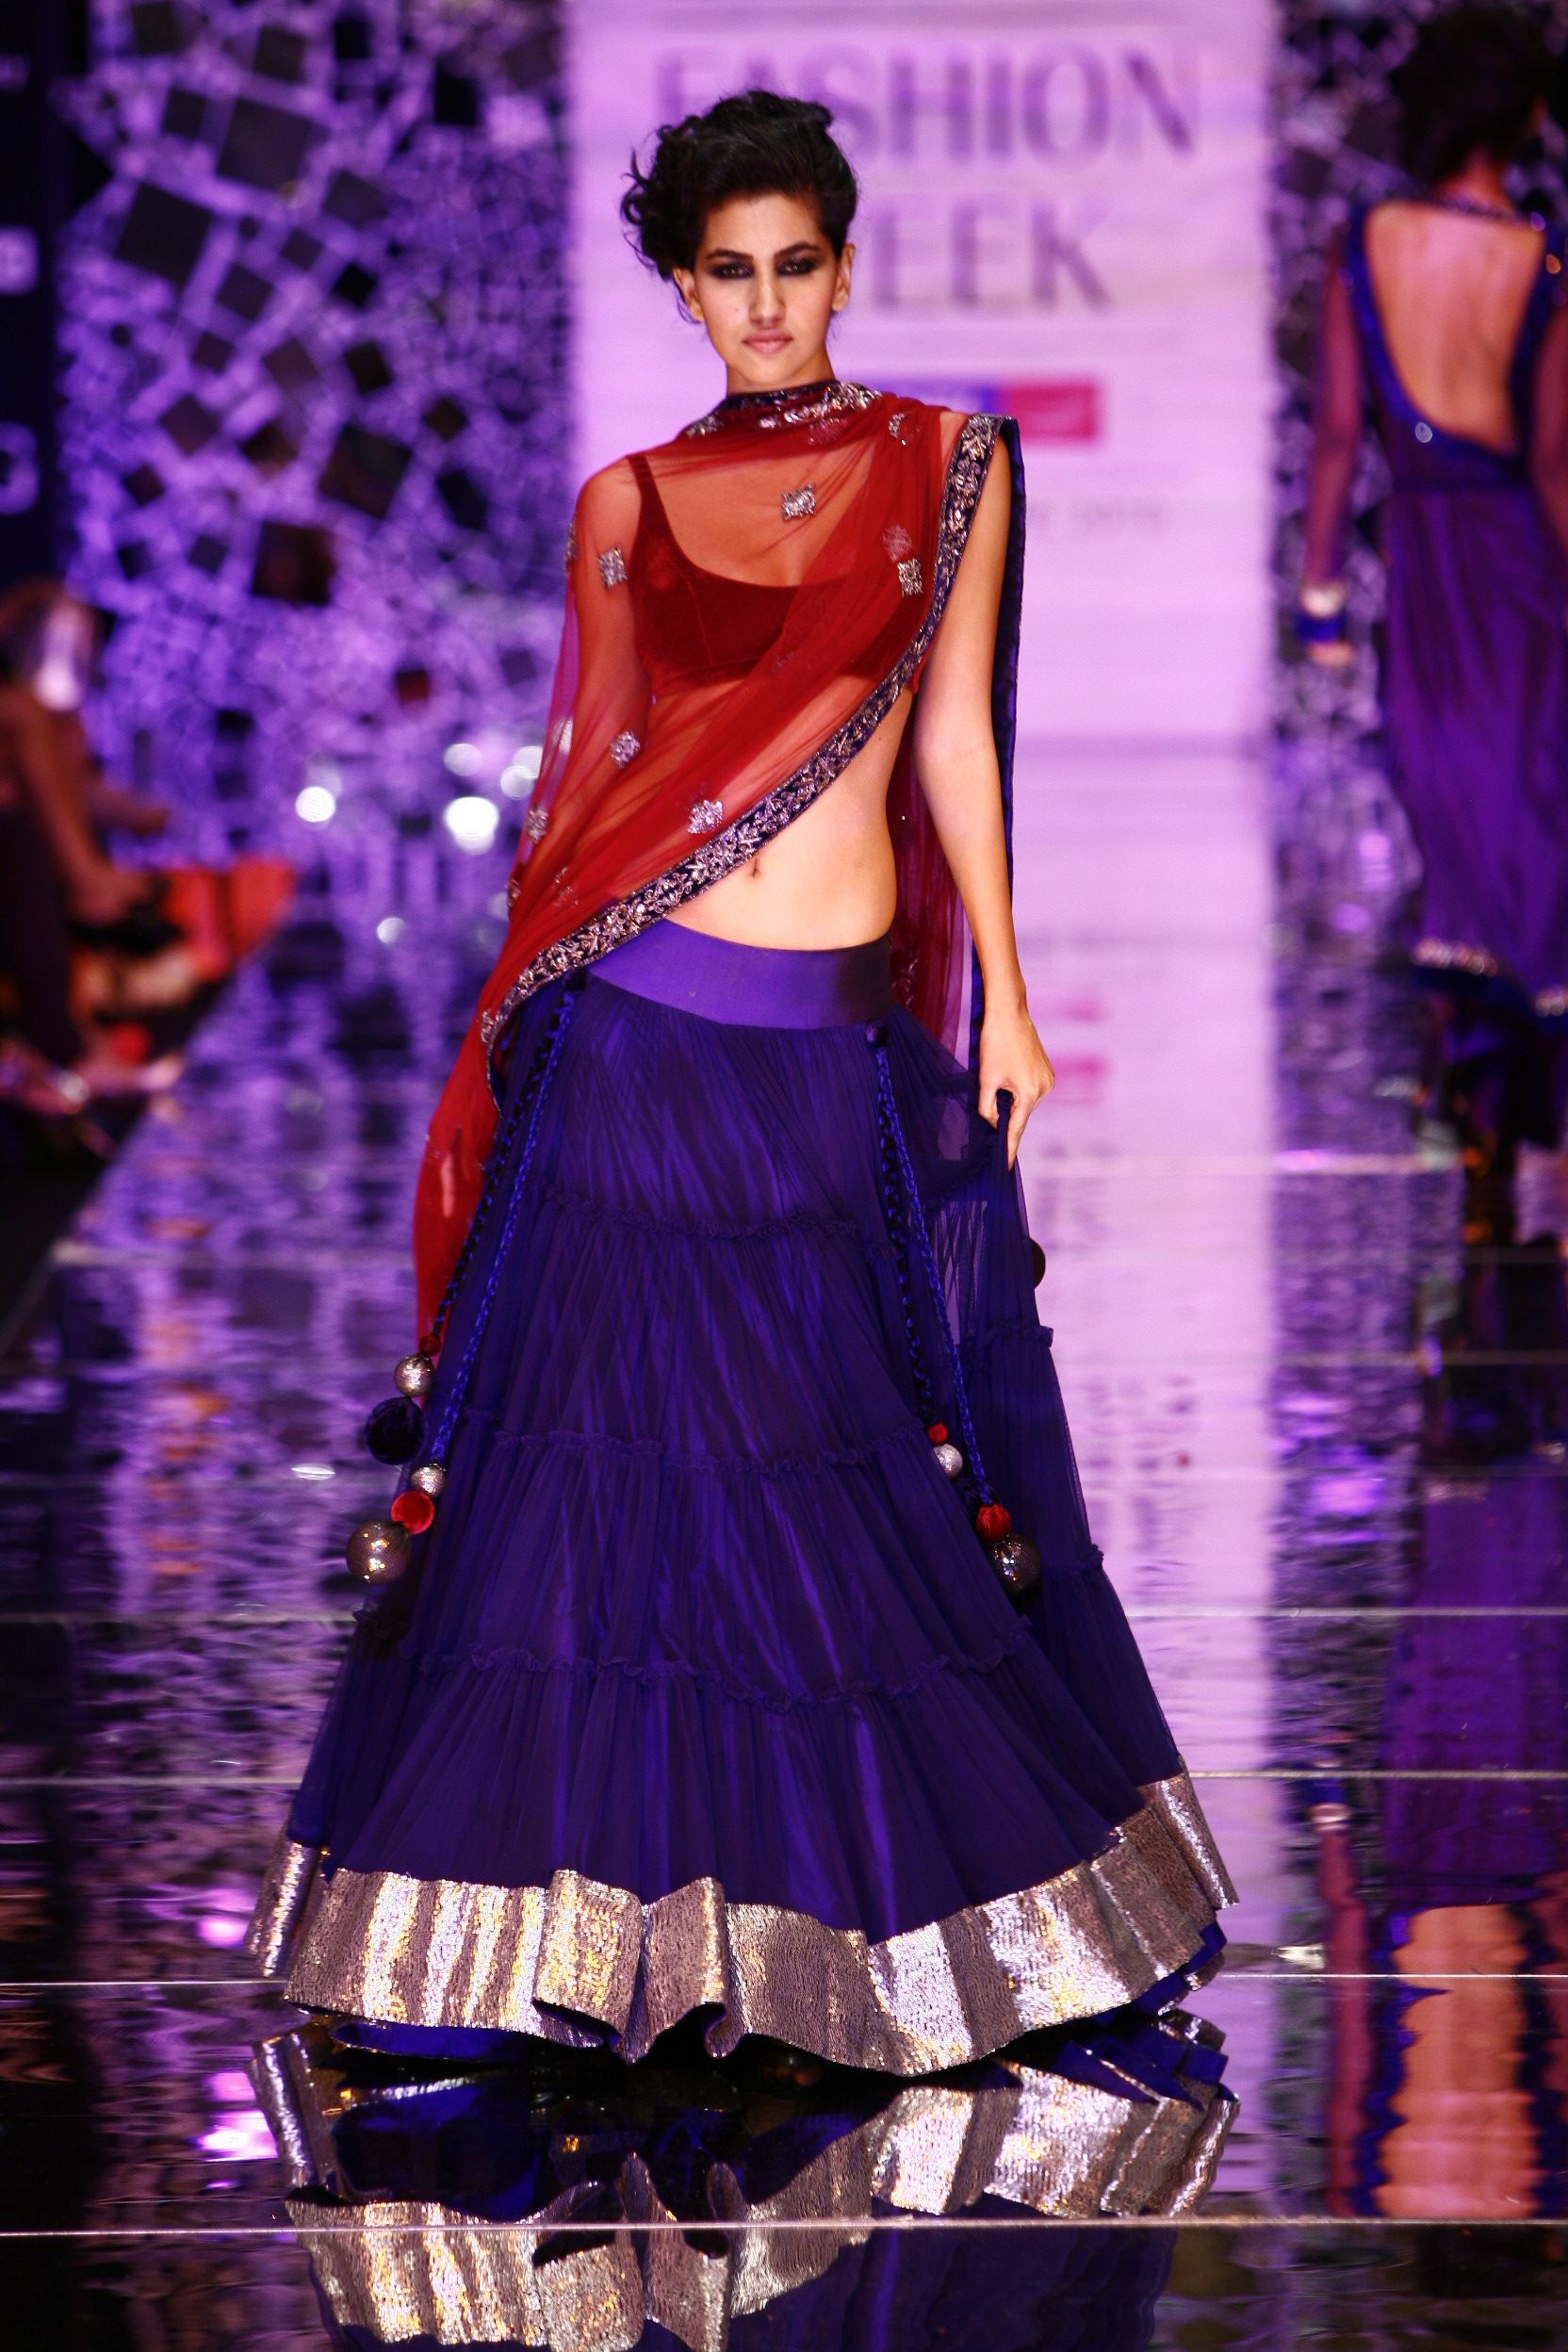 Manish malhotra love the colors so simple but not understated